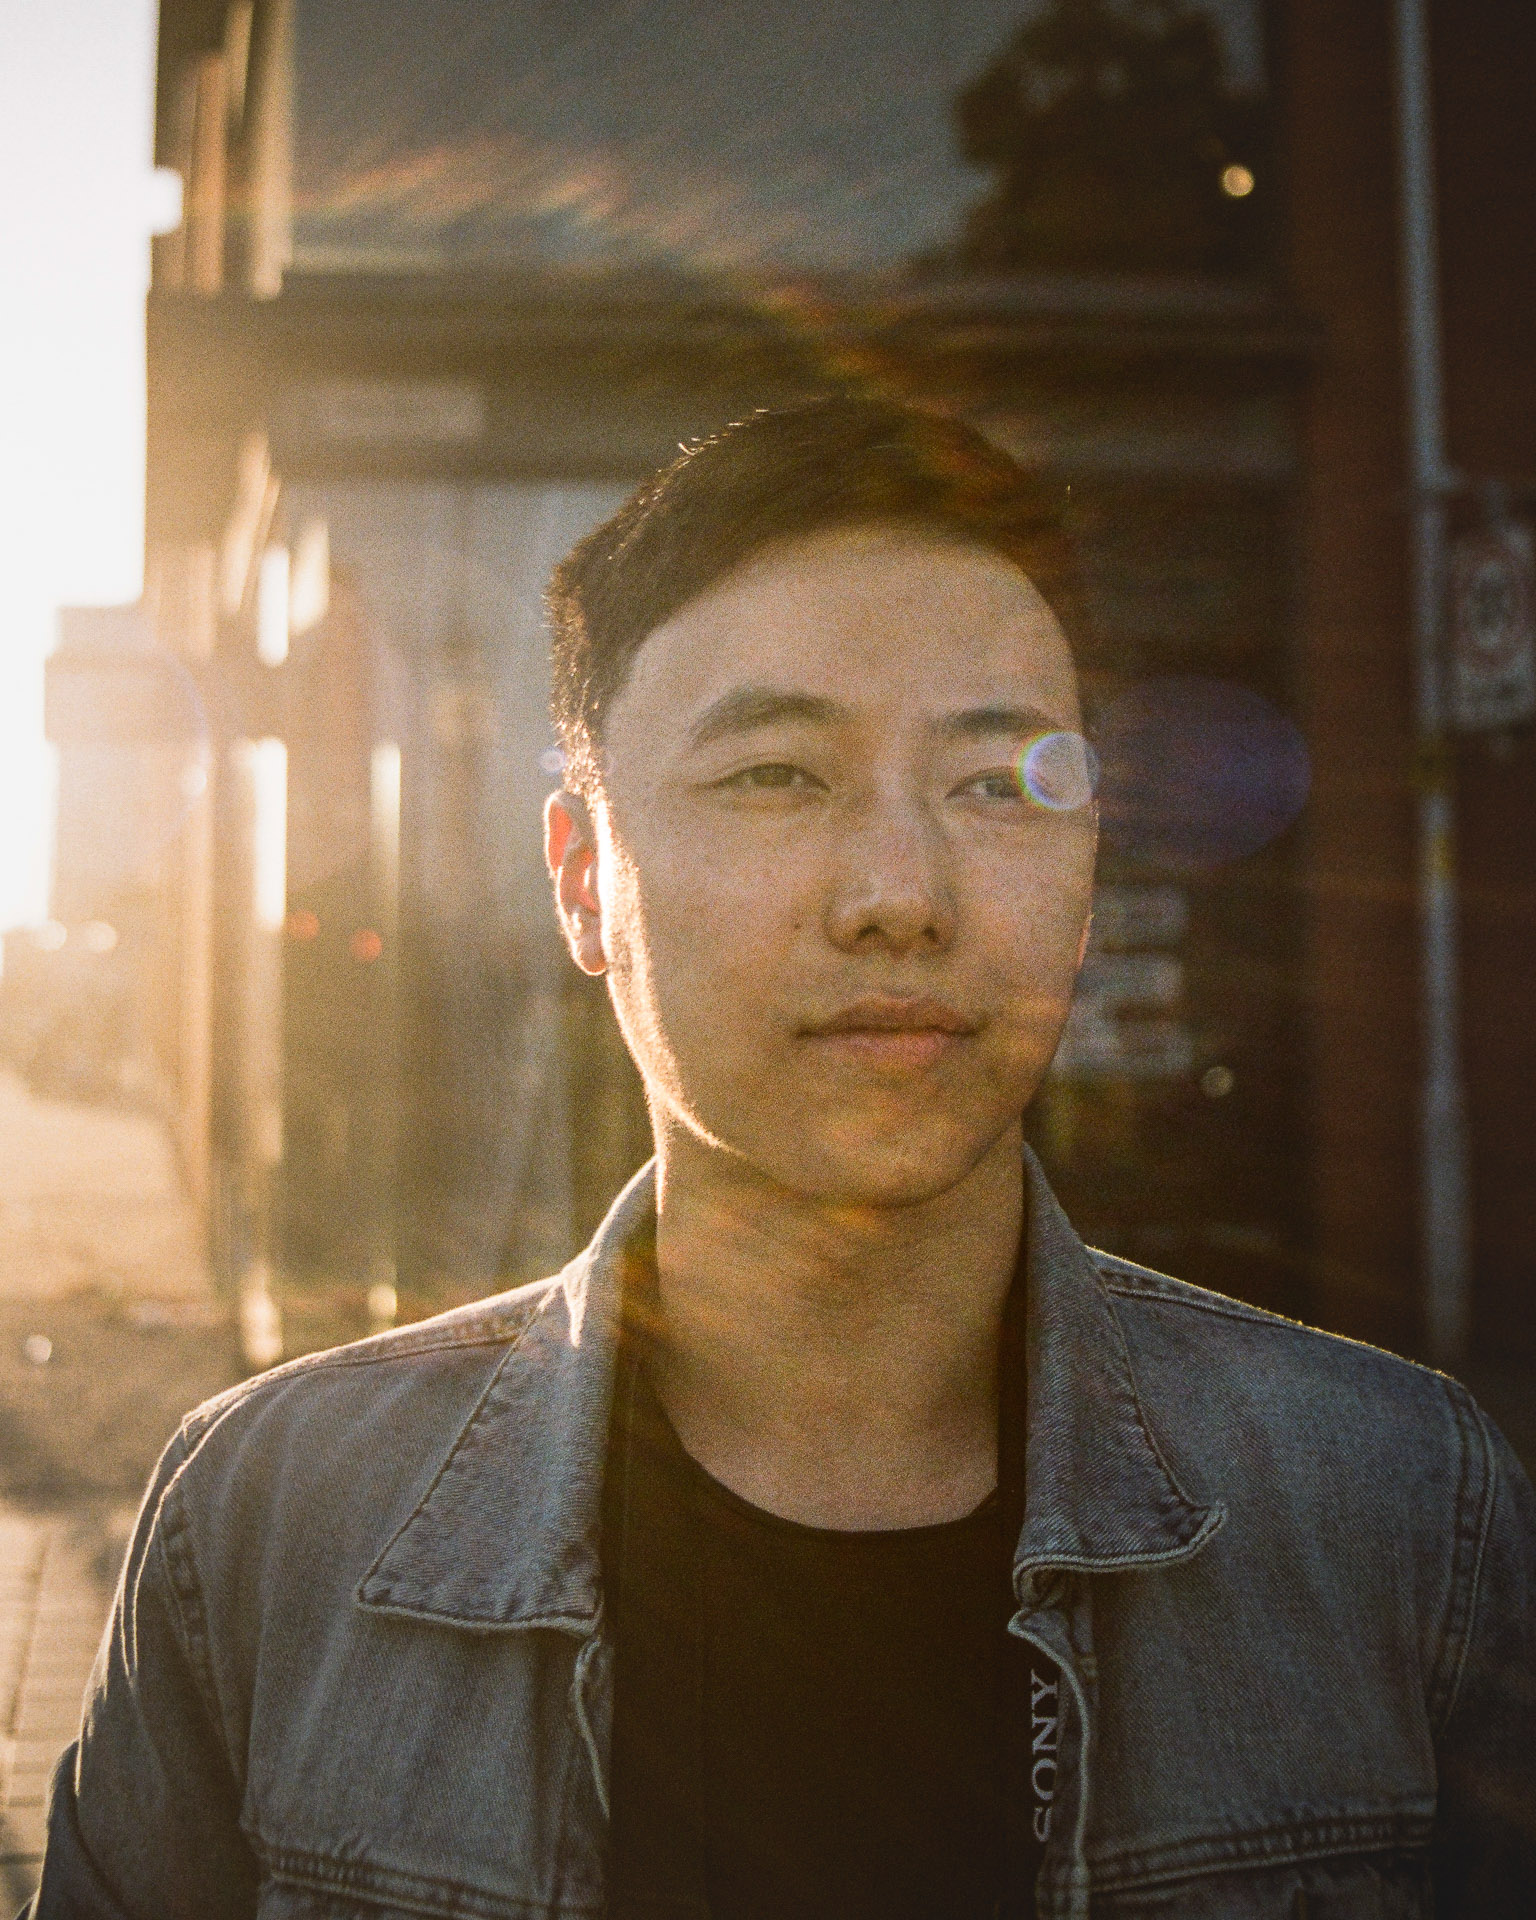 A Chinese man looks past the camera to the distance, with a sunburst across his face.